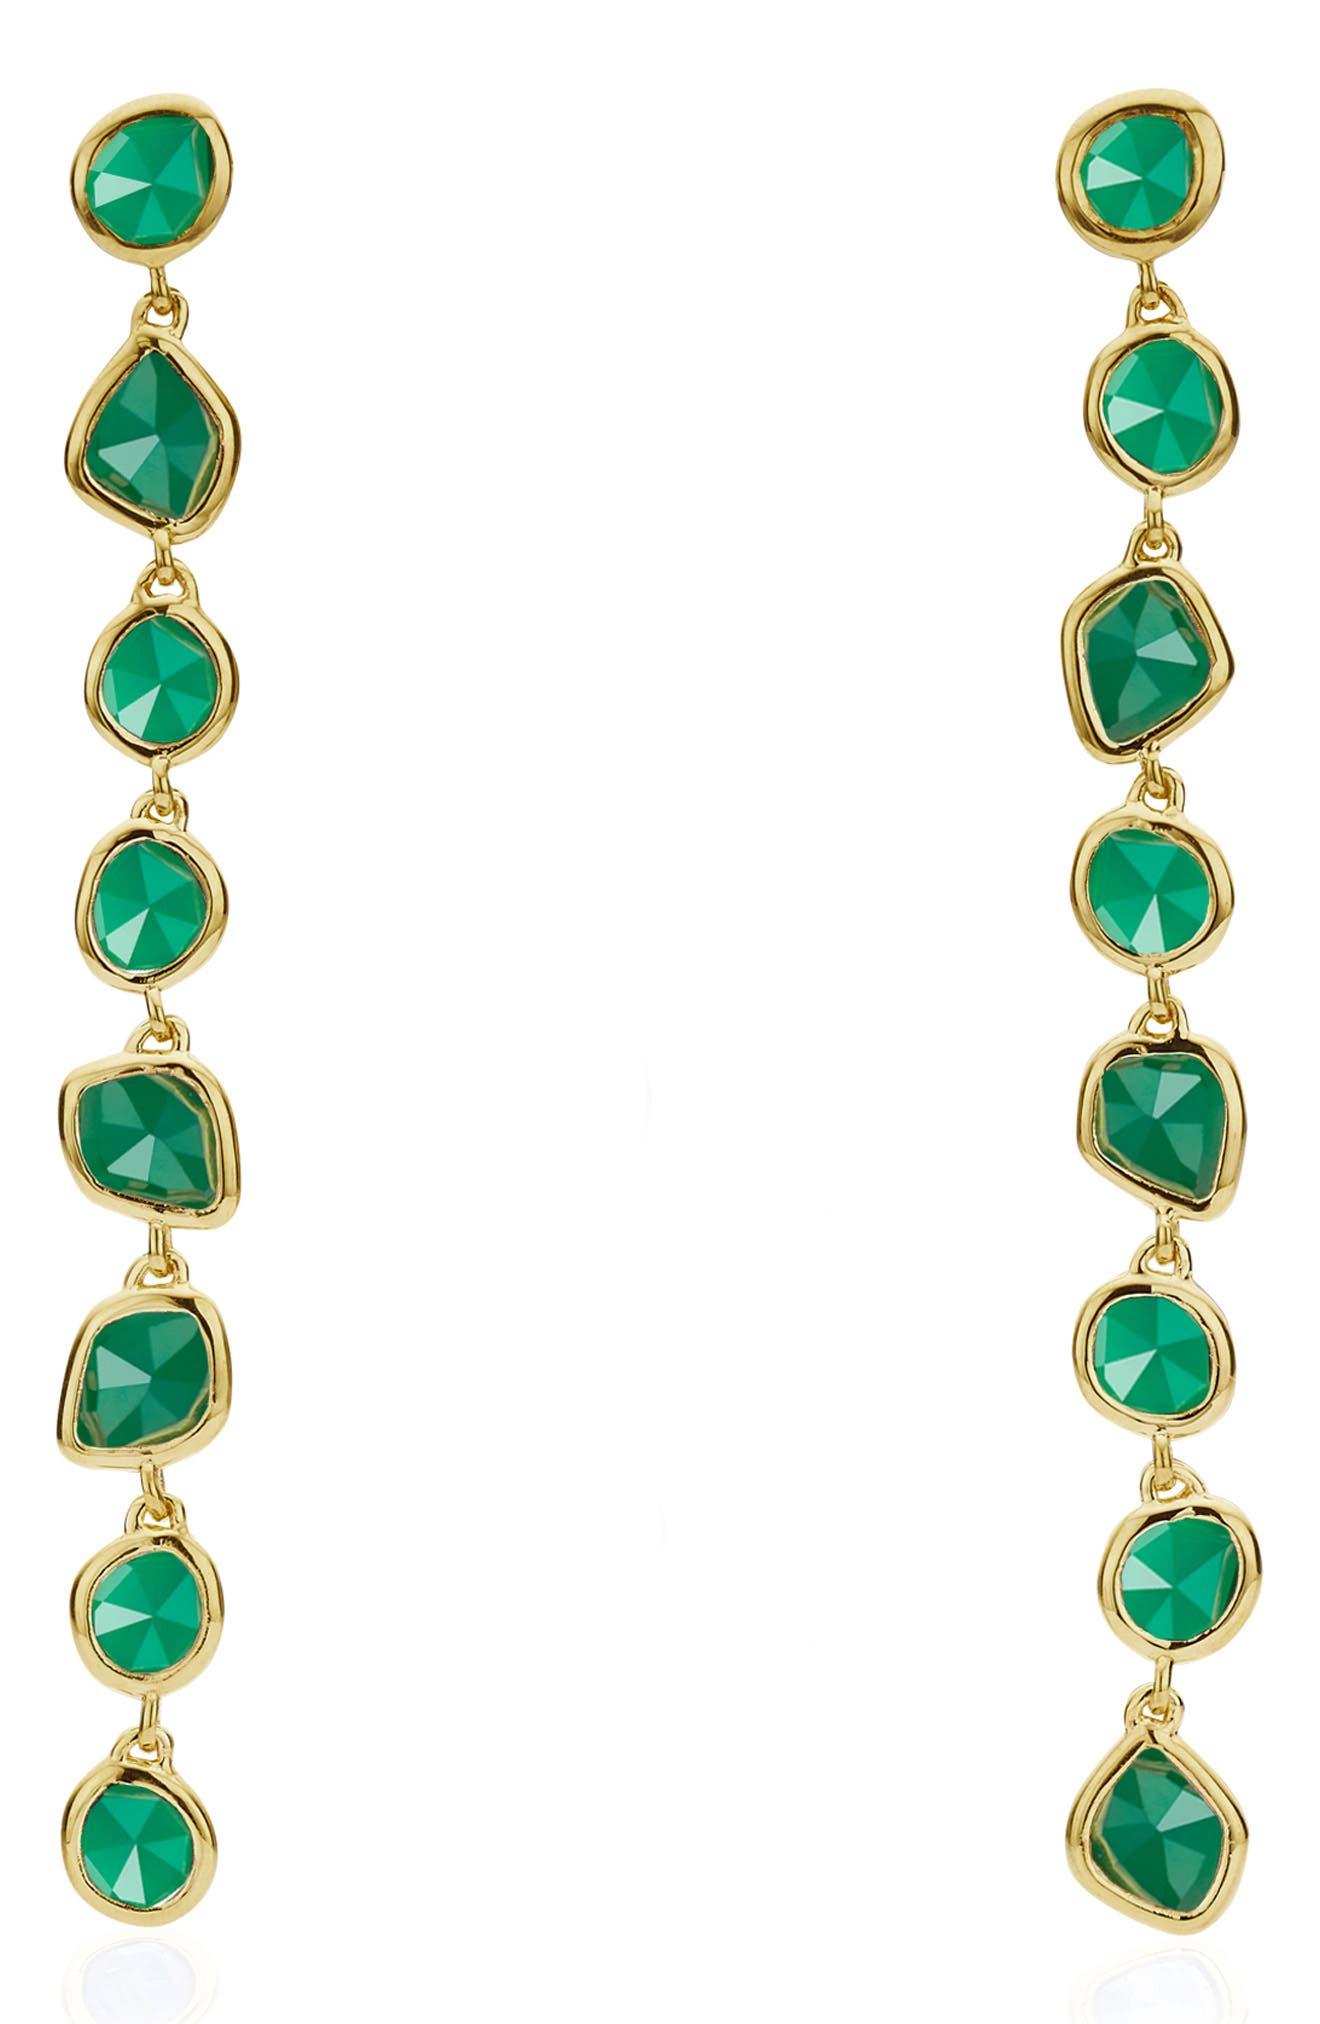 Inspired by the colors and coastline of Southern Italy, these delightful drop earrings feature roughly faceted semiprecious stones. Style Name: Monica Vinader Siren Mini Nugget Earrings. Style Number: 5509205. Available in stores.